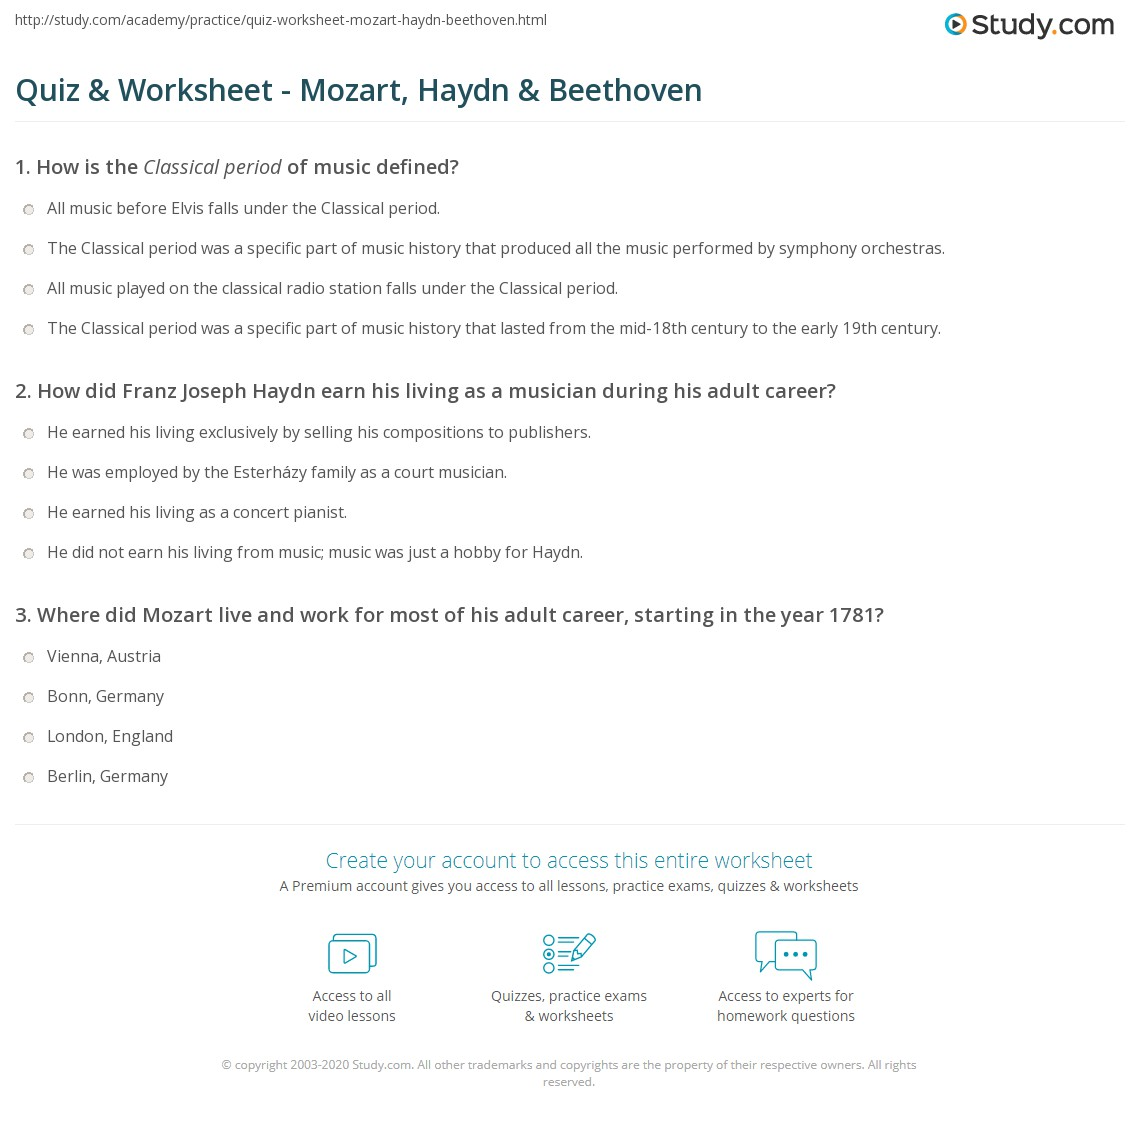 Printables Beethoven Lives Upstairs Worksheet beethoven worksheet davezan quiz amp mozart haydn study com